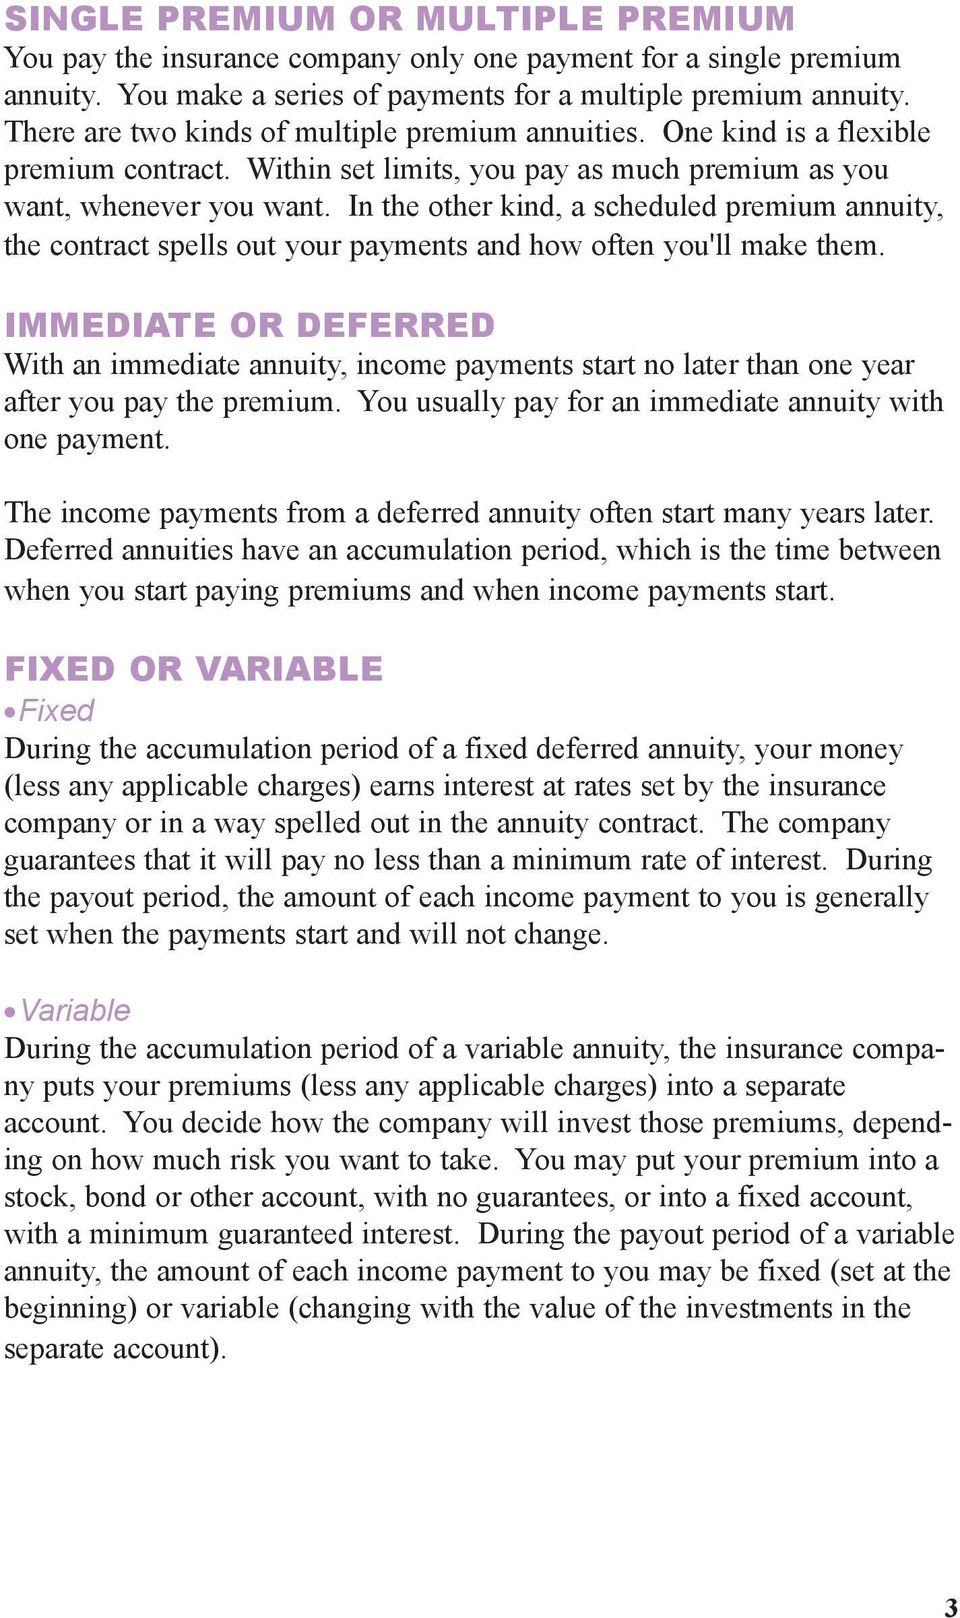 In the other kind, a scheduled premium annuity, the contract spells out your payments and how often you'll make them.